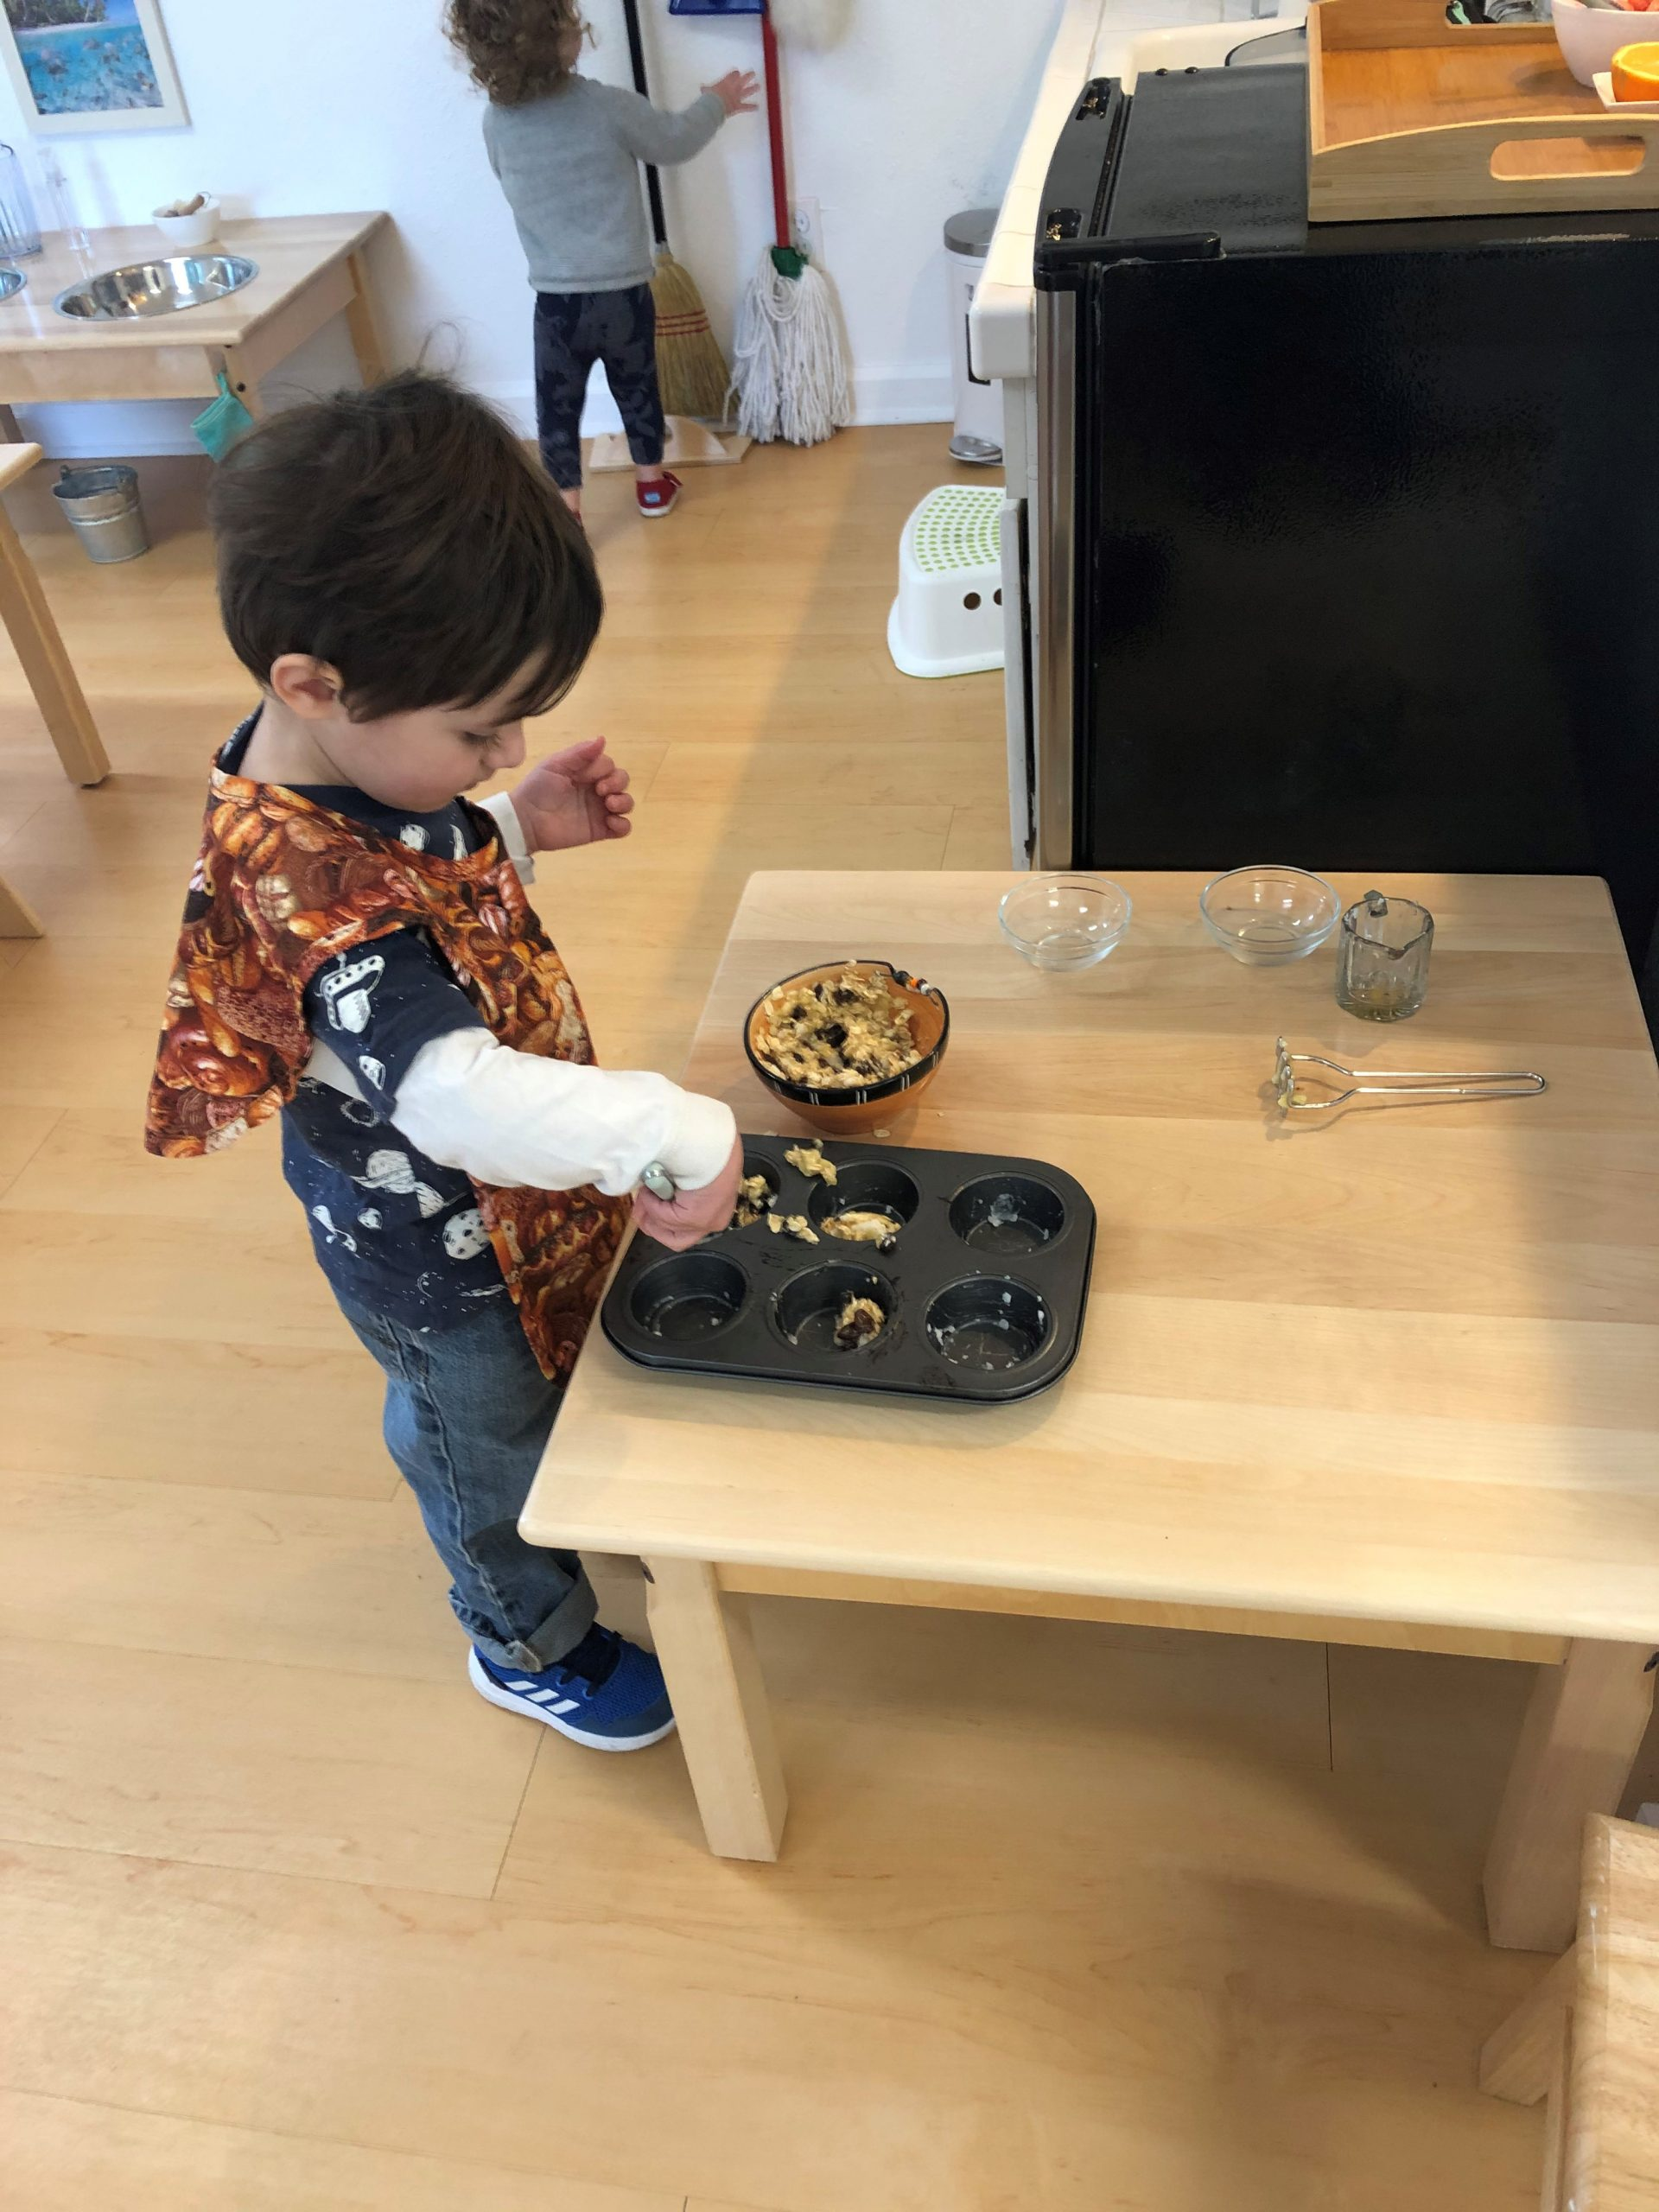 Toddler baking muffins